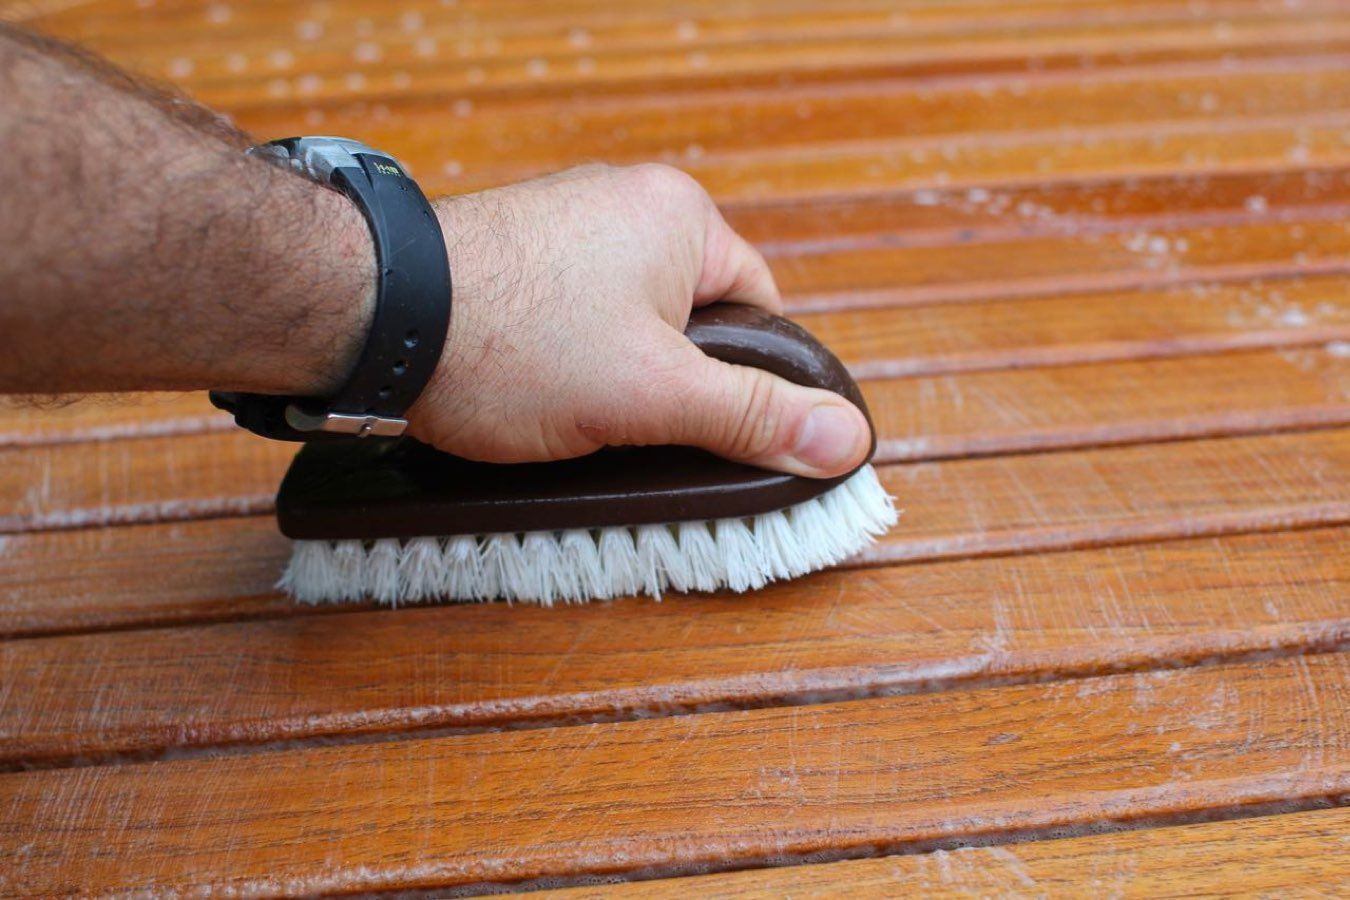 Man showing how to clean teak